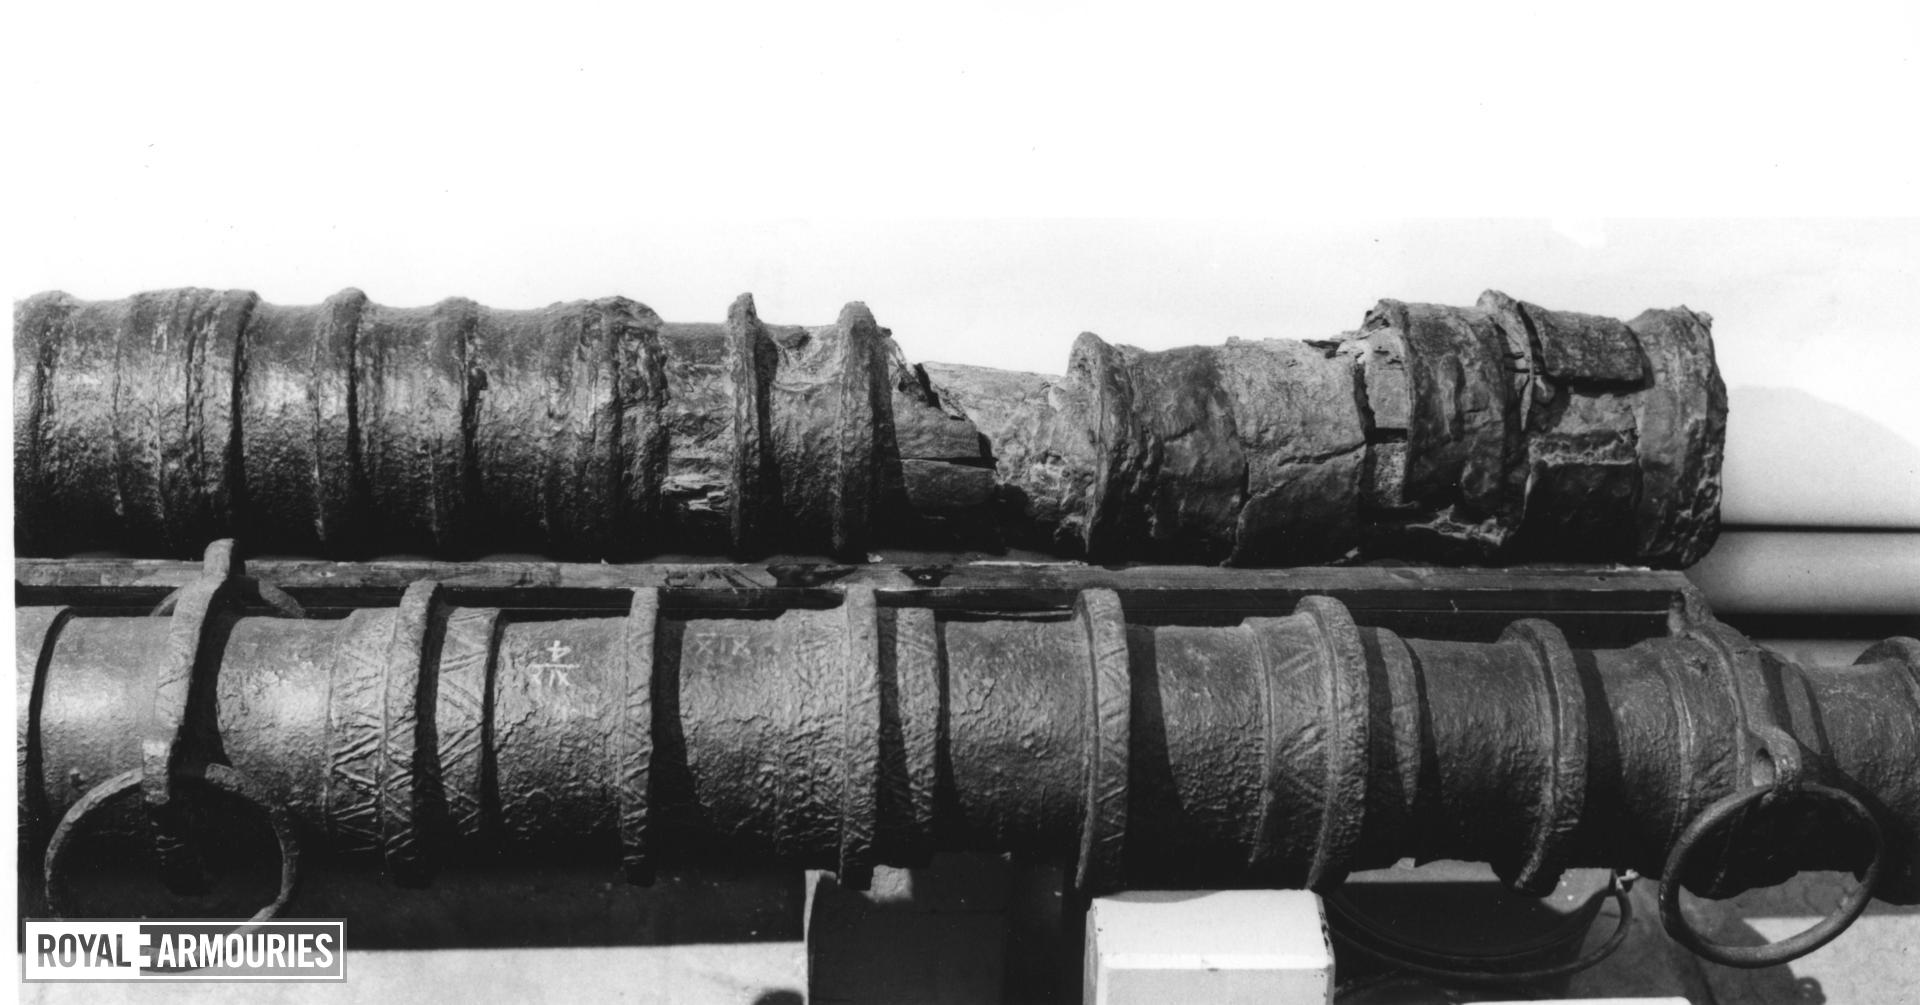 Breech-Loading Iron Gun and Bed Section of a wrought-iron ' hoop & band' gun. Section of wooden bed.